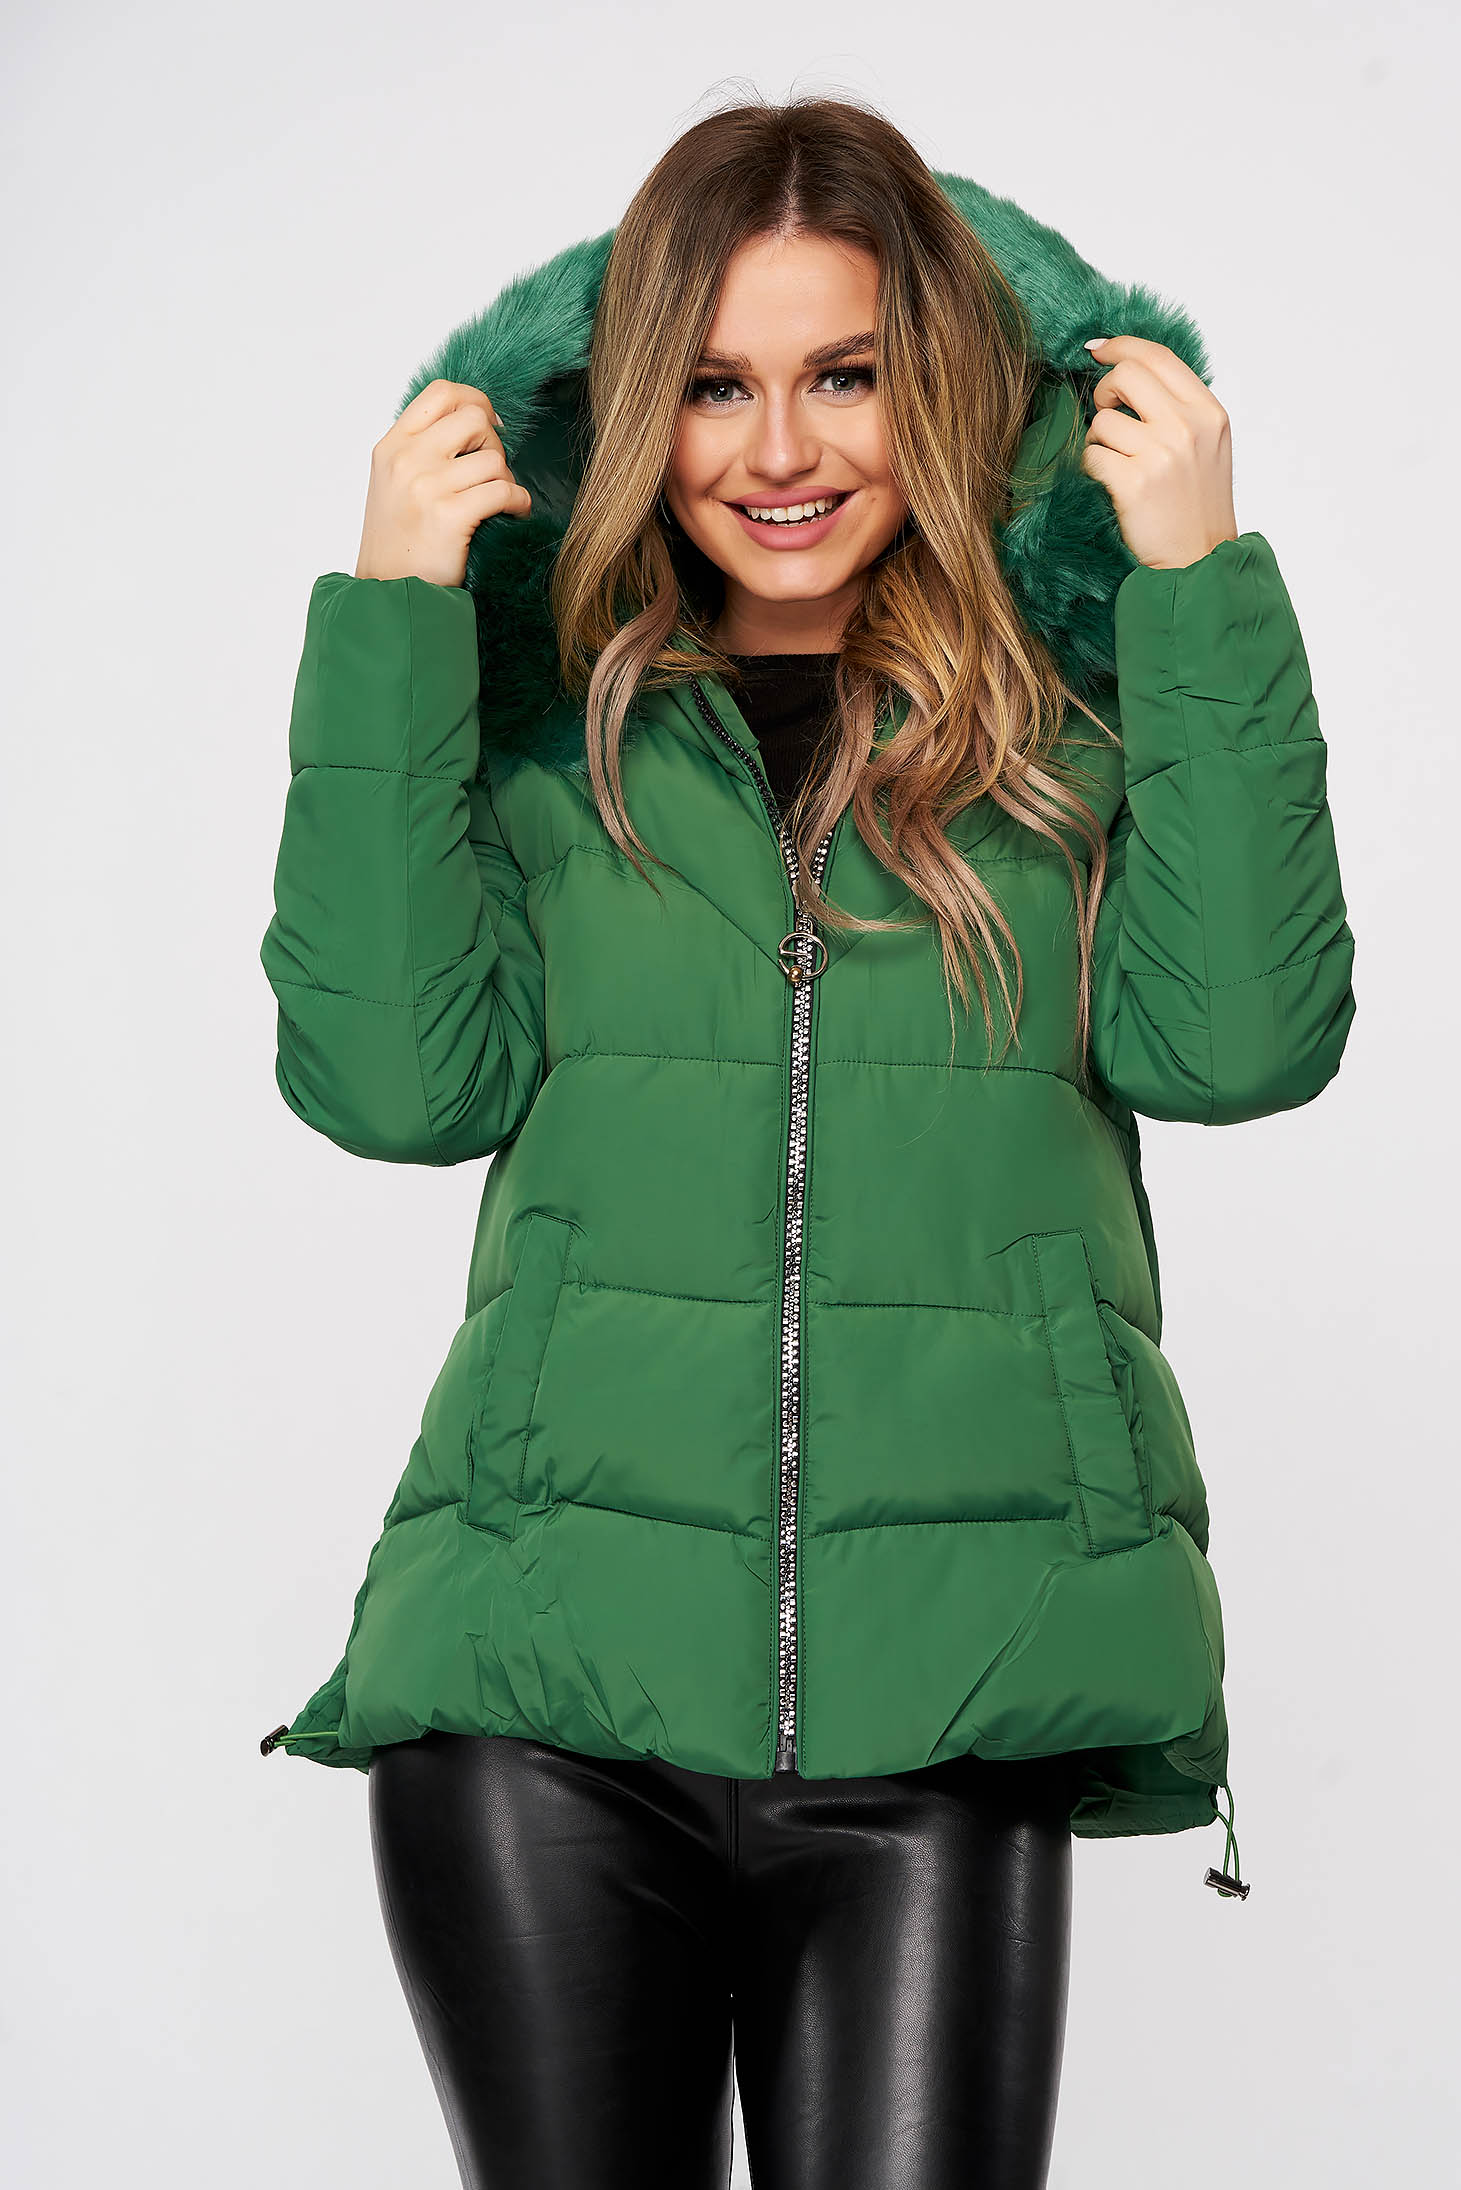 Green from slicker jacket with zipper details pockets with faux fur accessory detachable hood